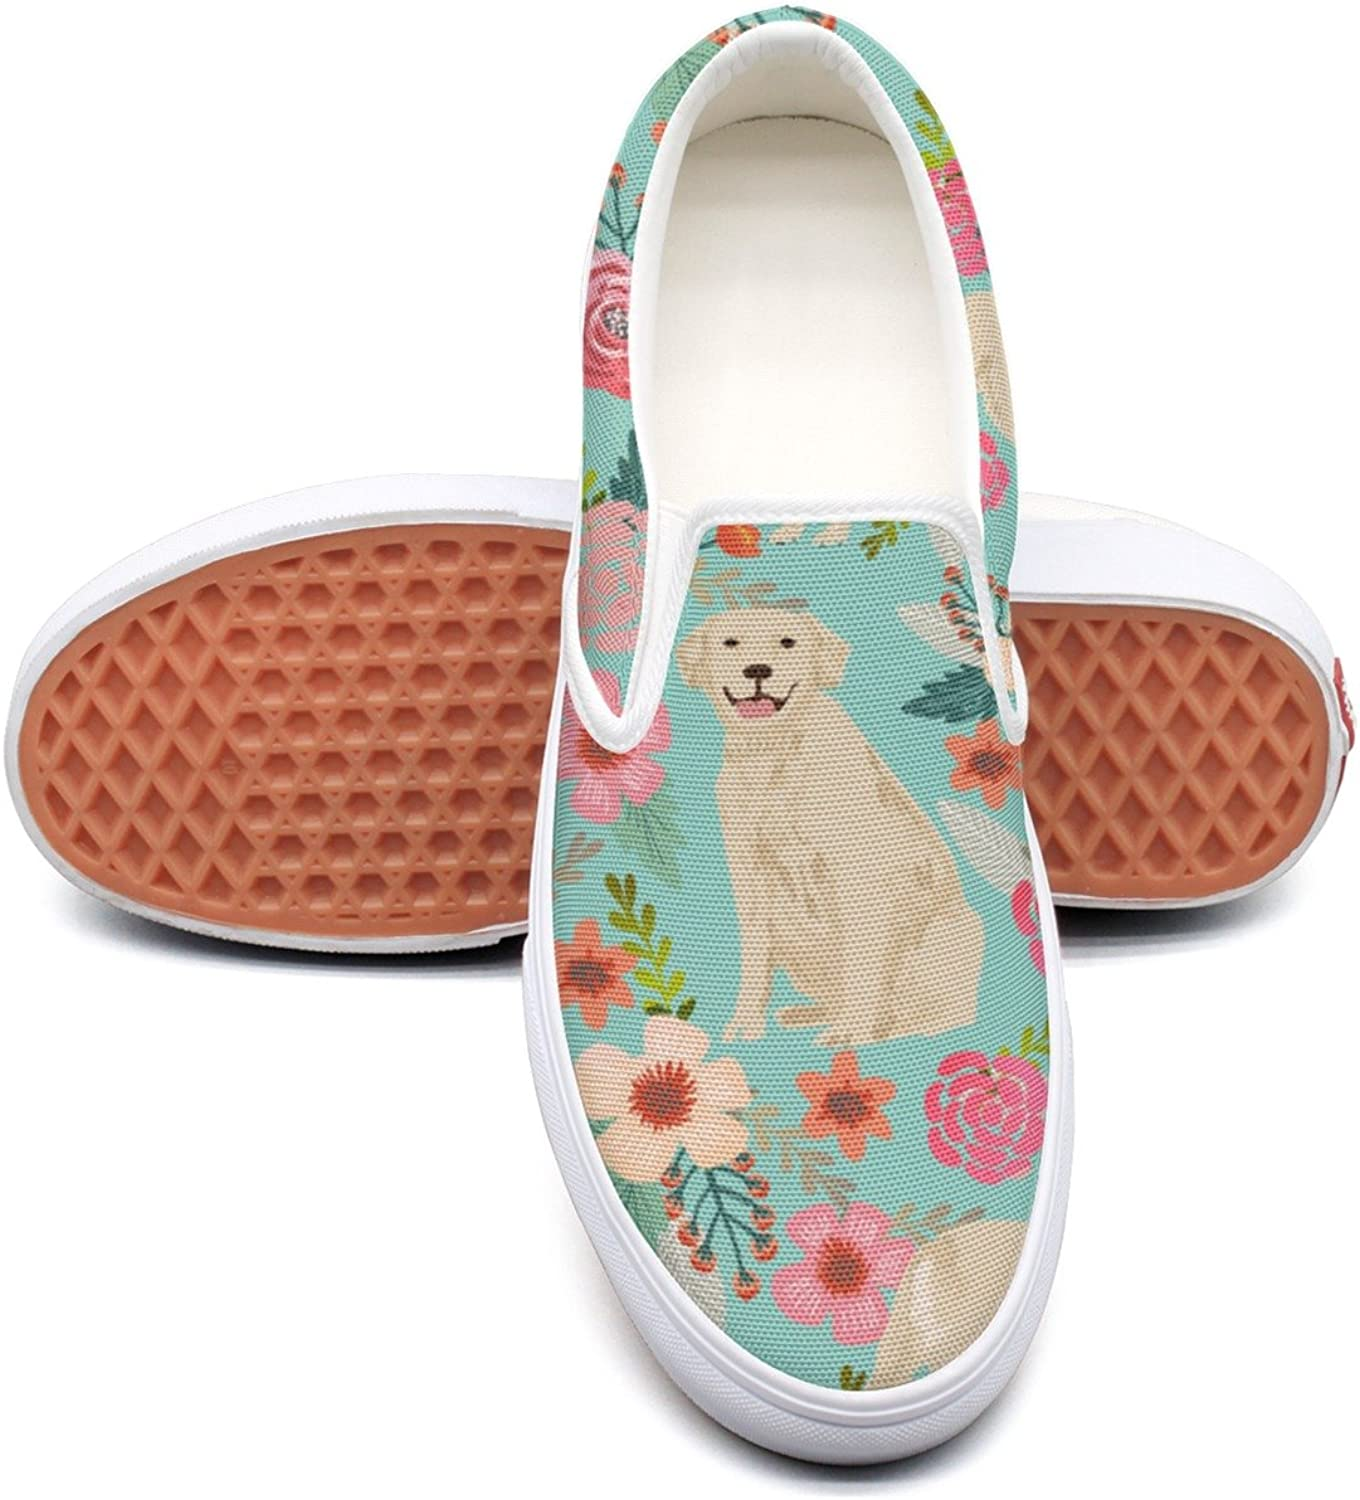 Hjkggd fgfds Casual golden Retriever Dog Flower Woman Canvas shoes